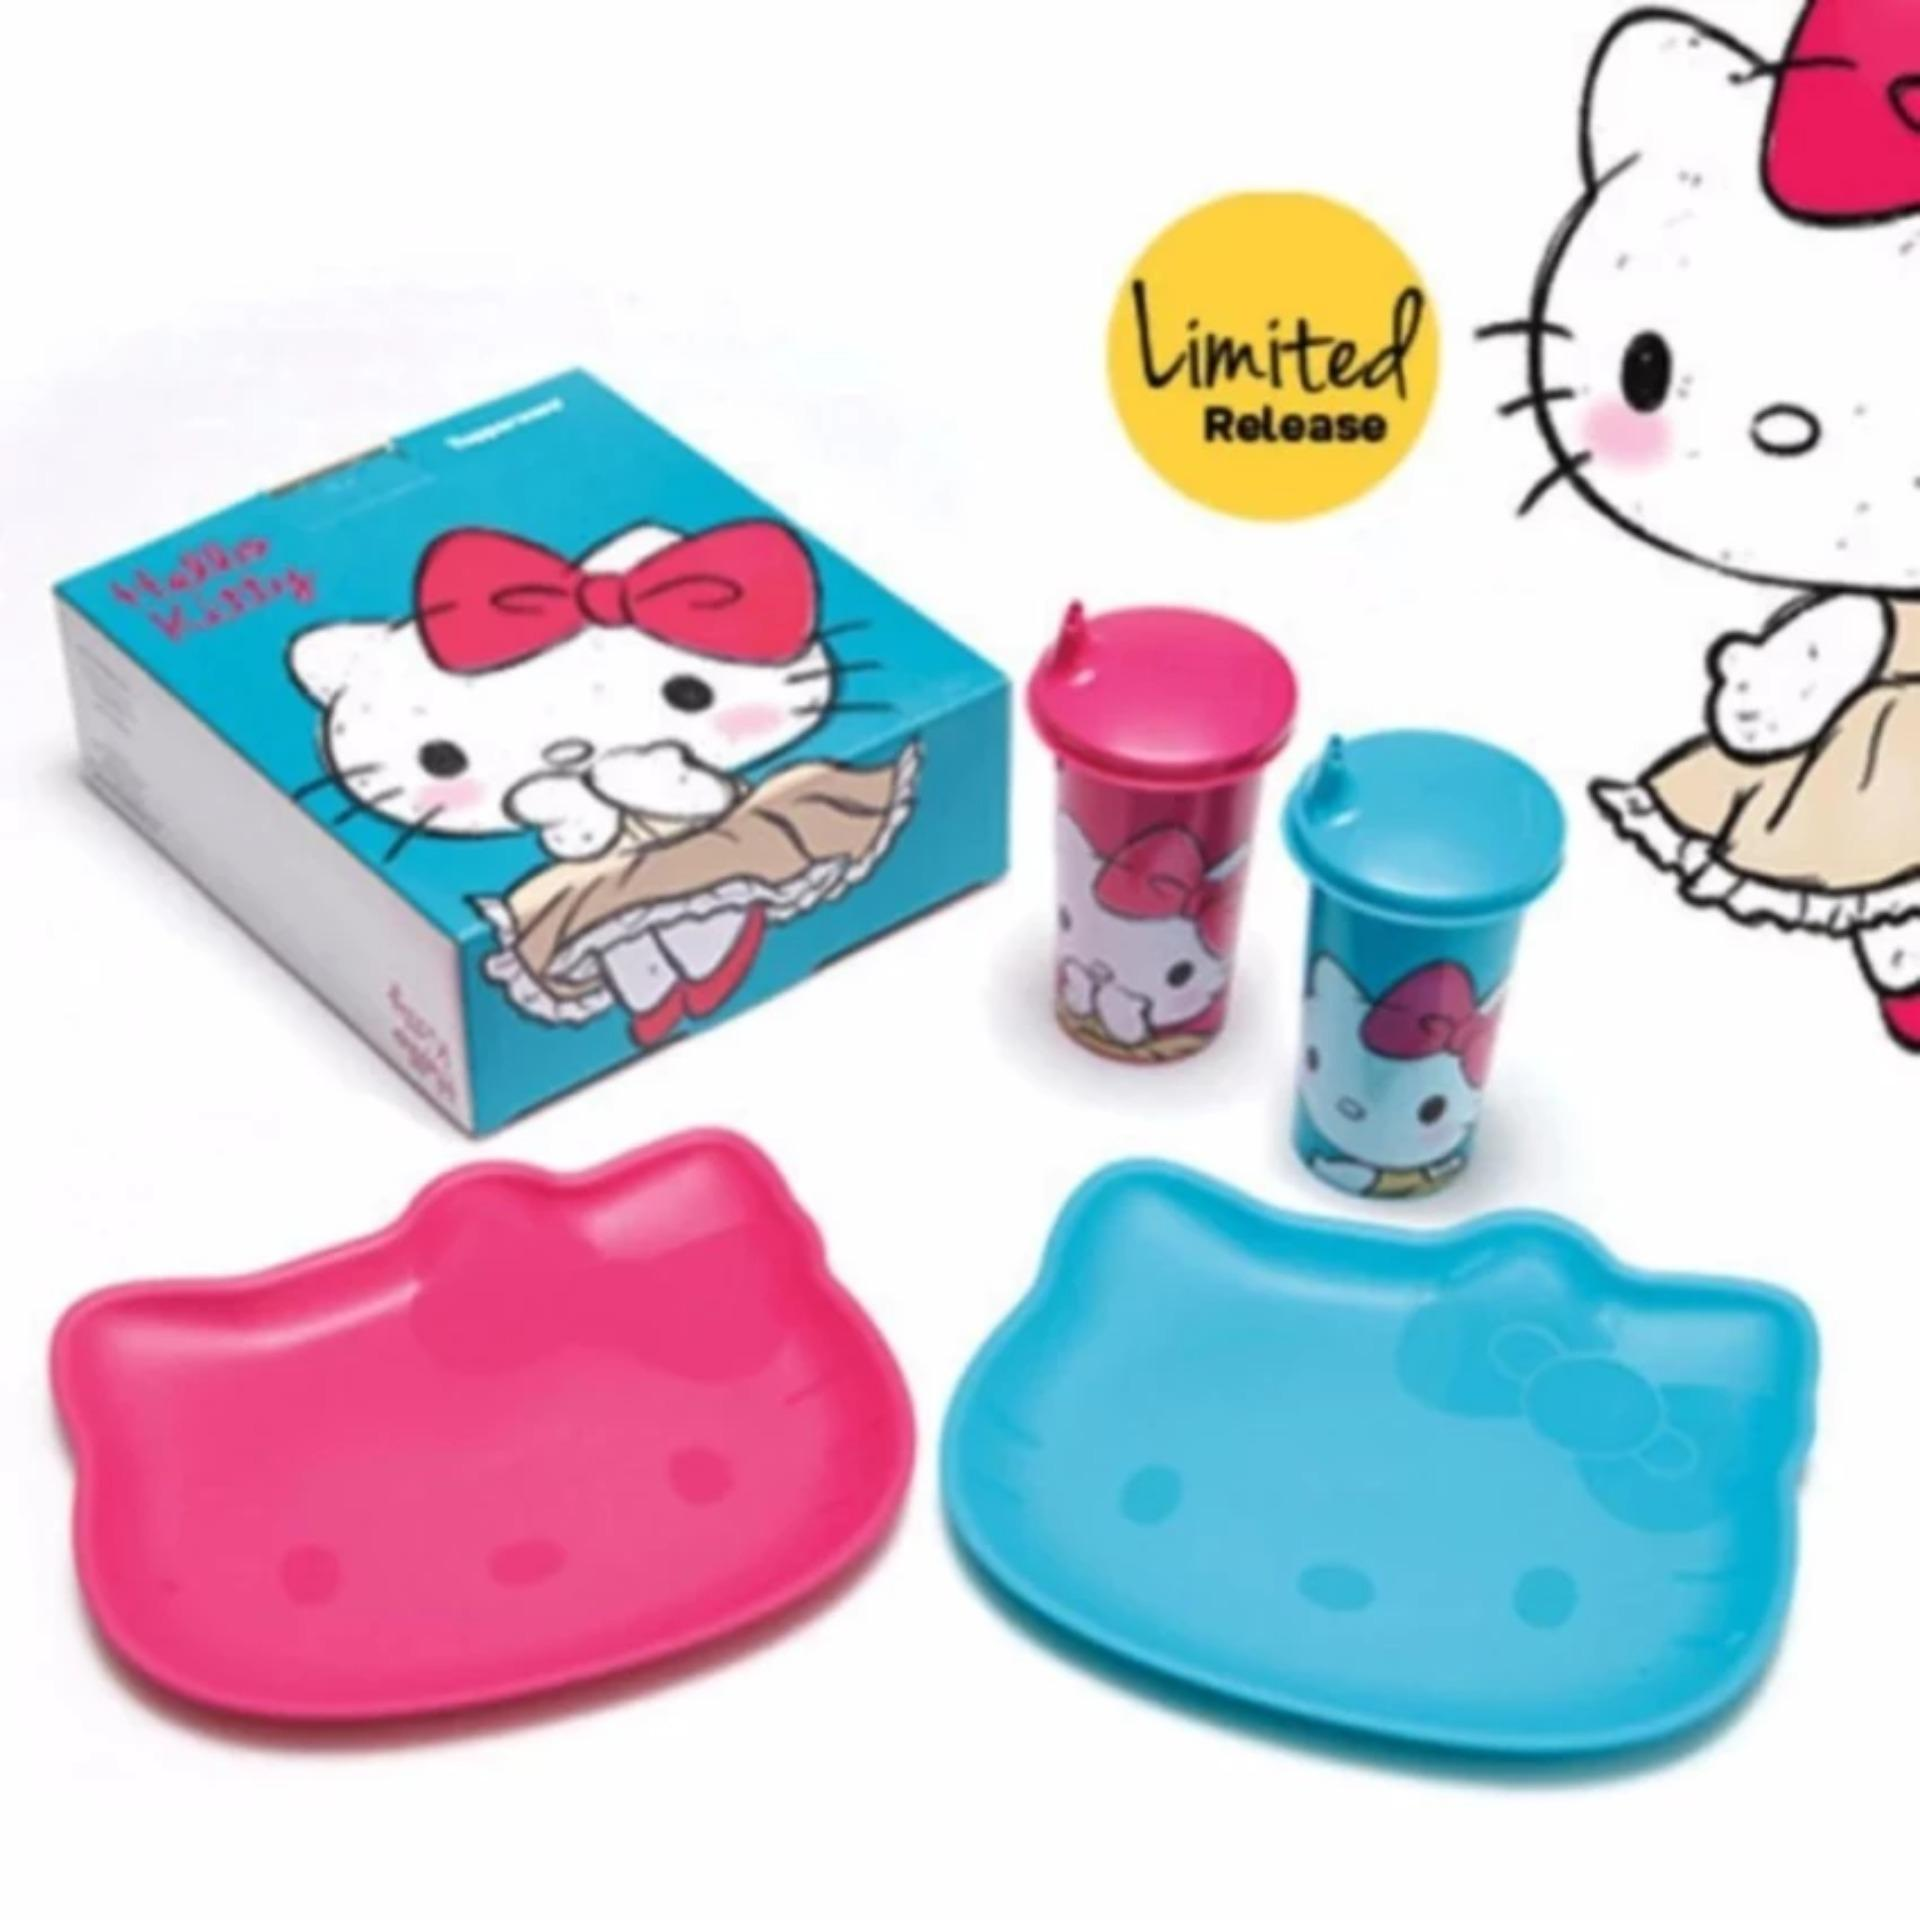 Tupperware Hello Kitty Set - Hello Kitty Tumbler (2 pcs) & Plate (2 pcs)